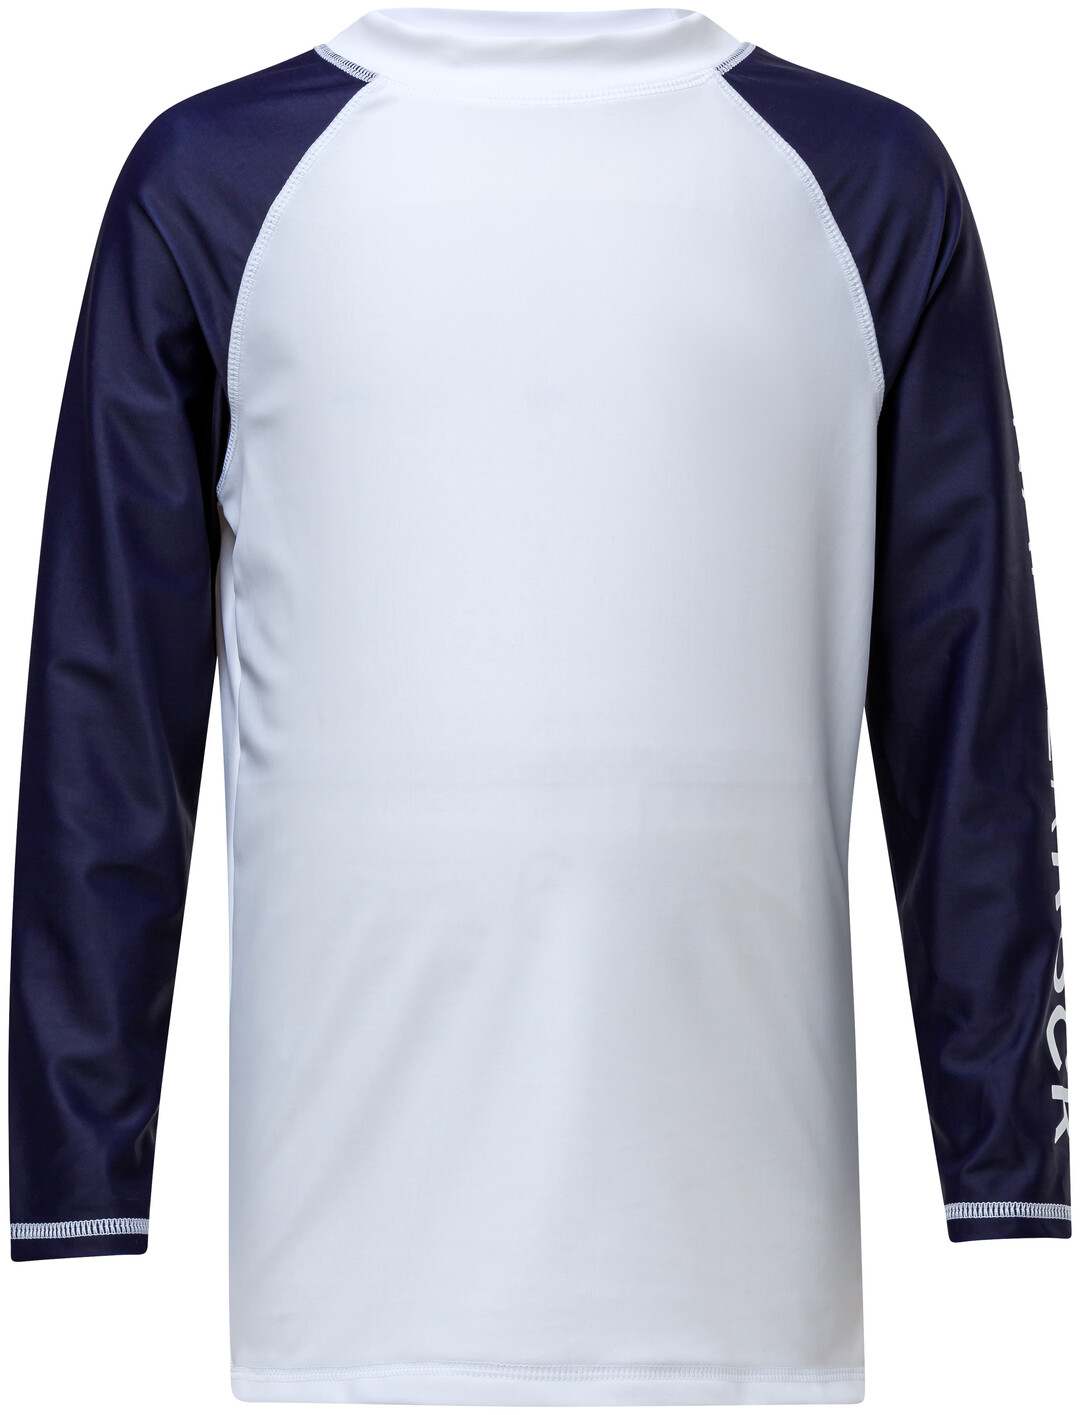 Navy Sleeve Rash Top 8